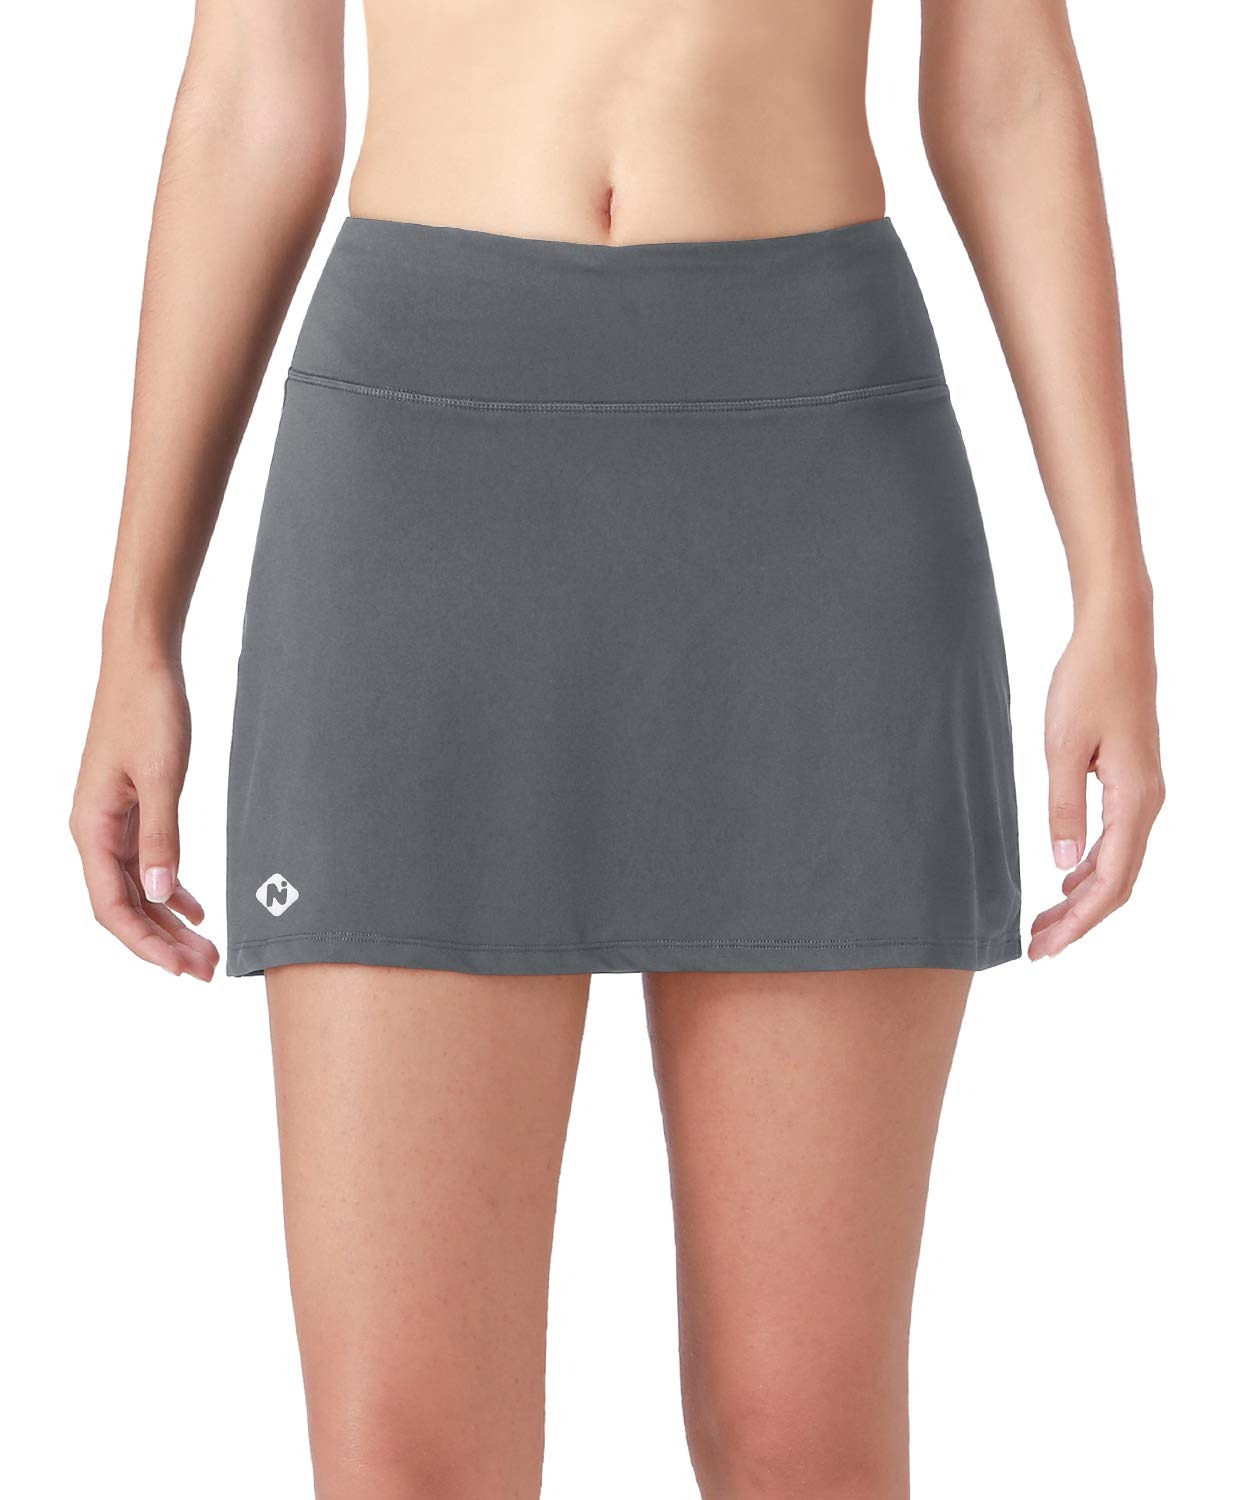 Naviskin Women's Active Athletic Skort Lightweight Skirt with Pockets Inner Shorts Perfect for Running Golf Tennis Workout Casual Use Grey Size M by Naviskin